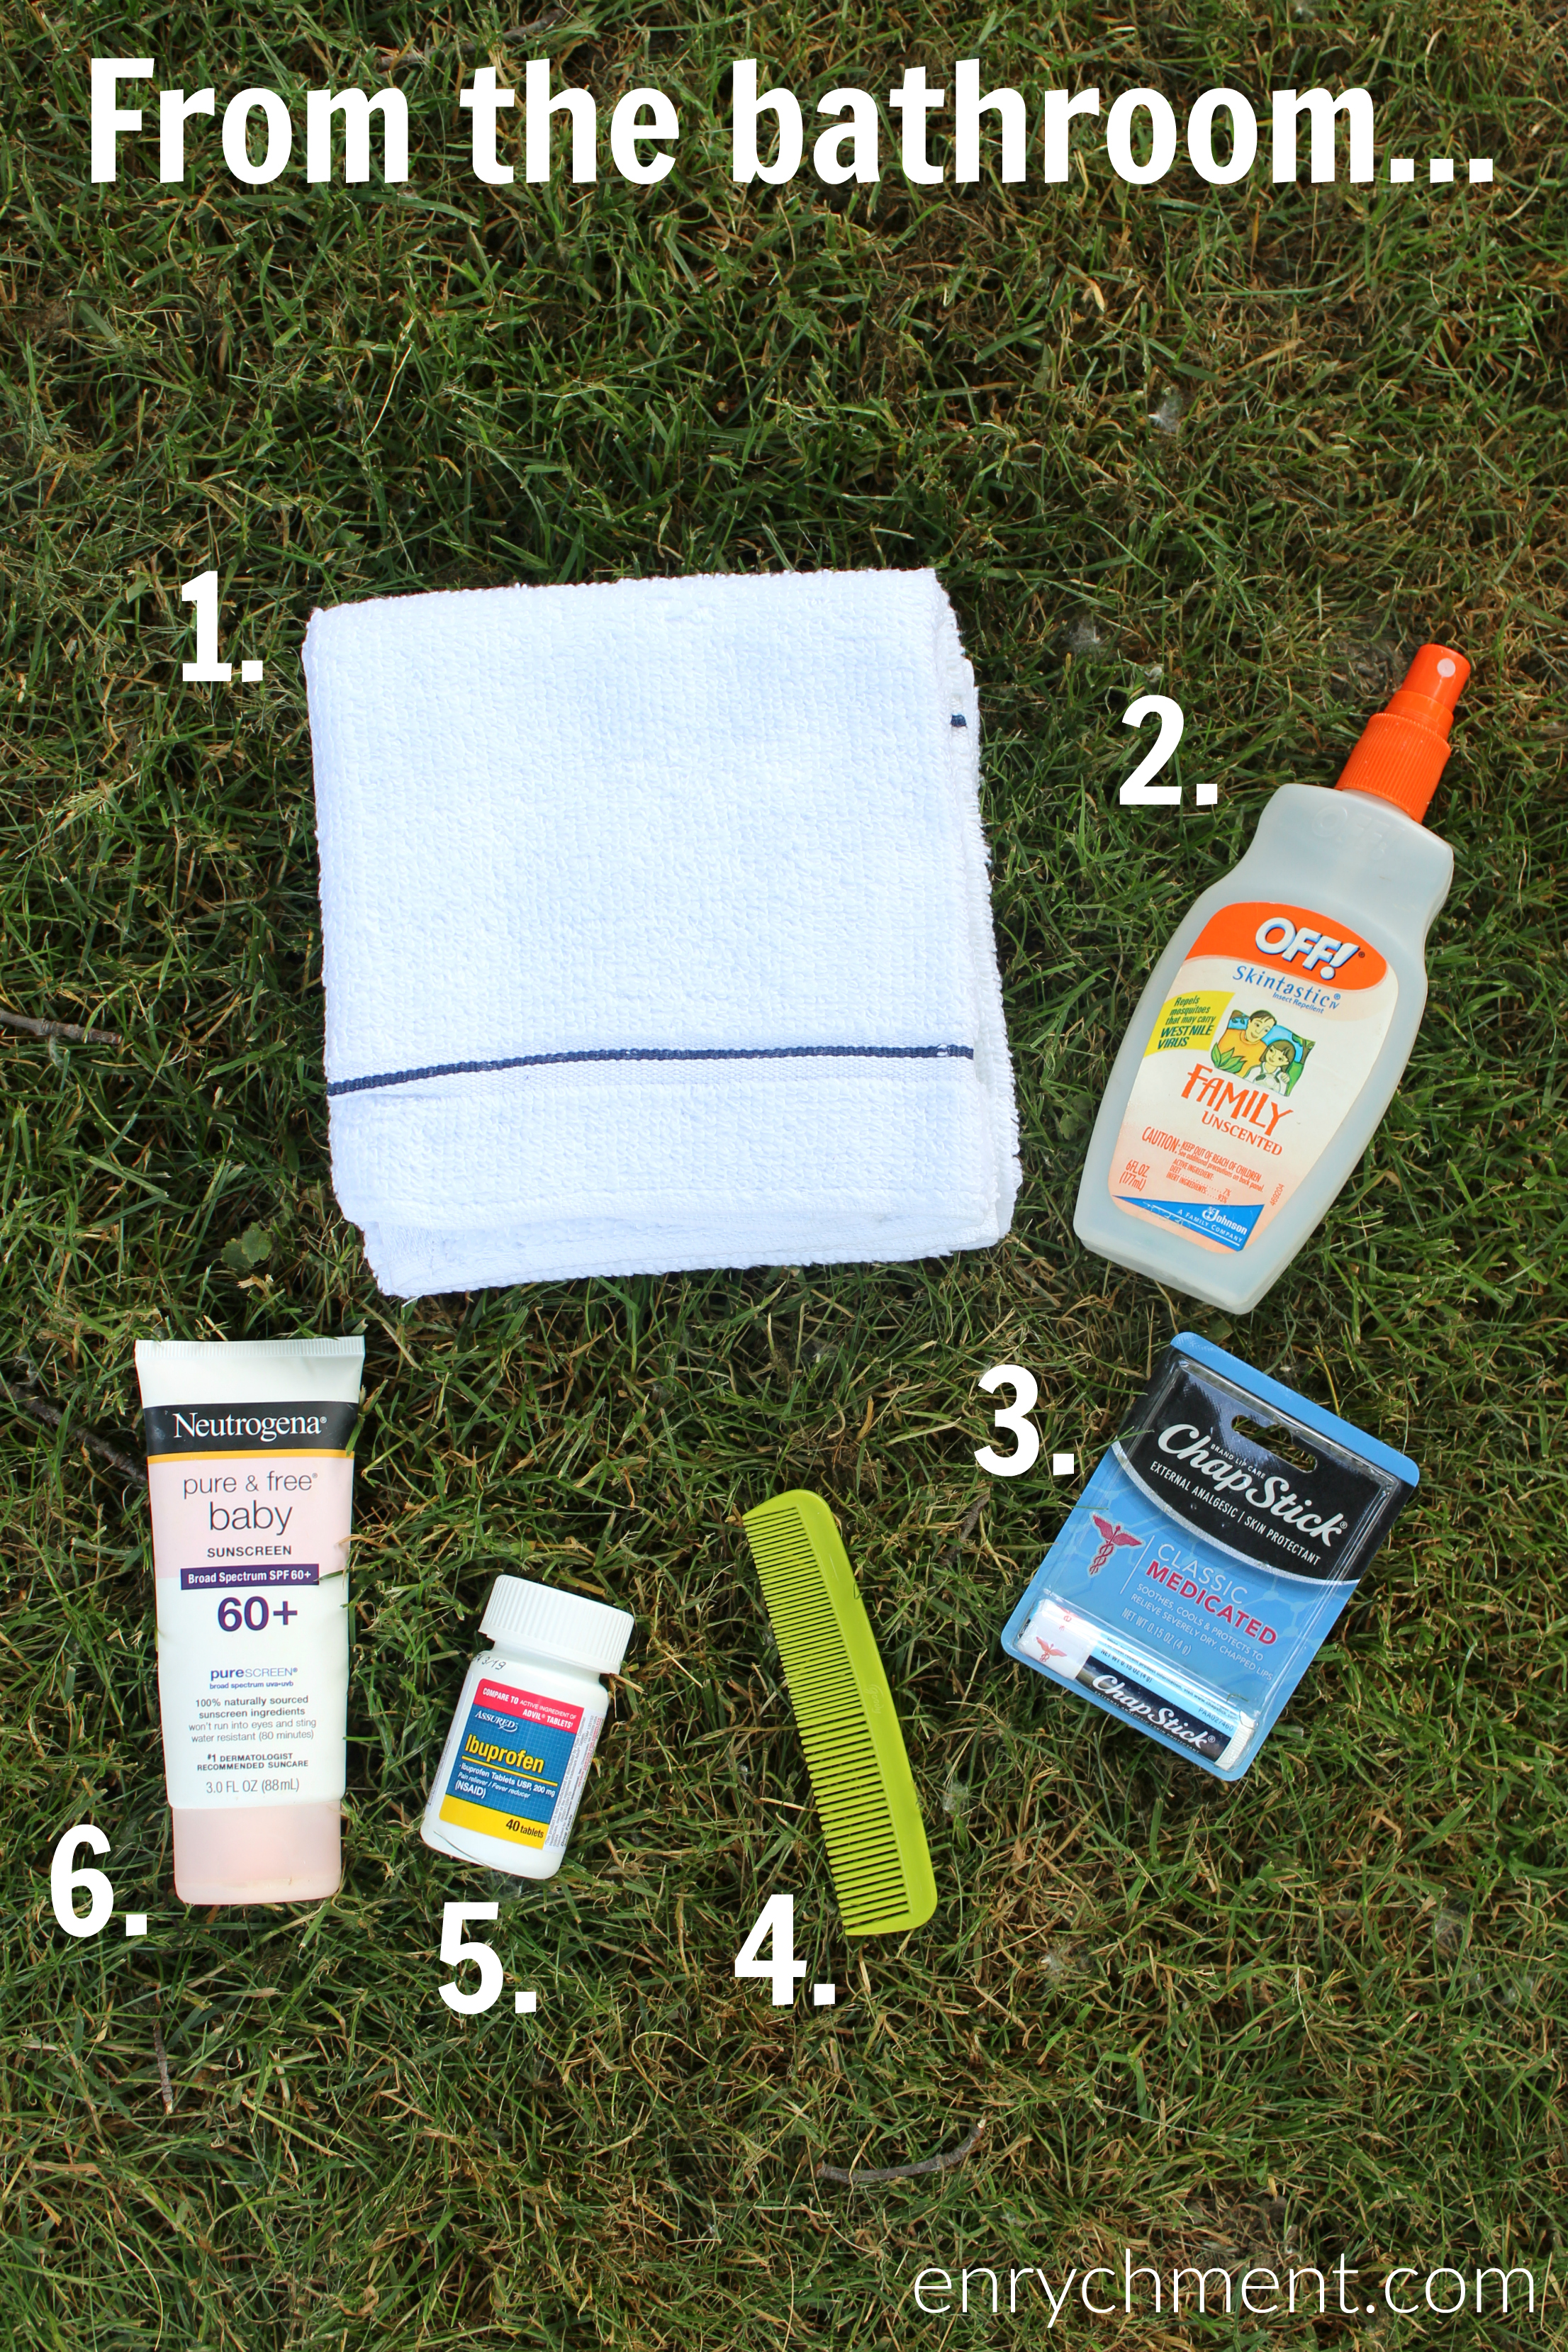 Summer Bag Essentials from the bathroom